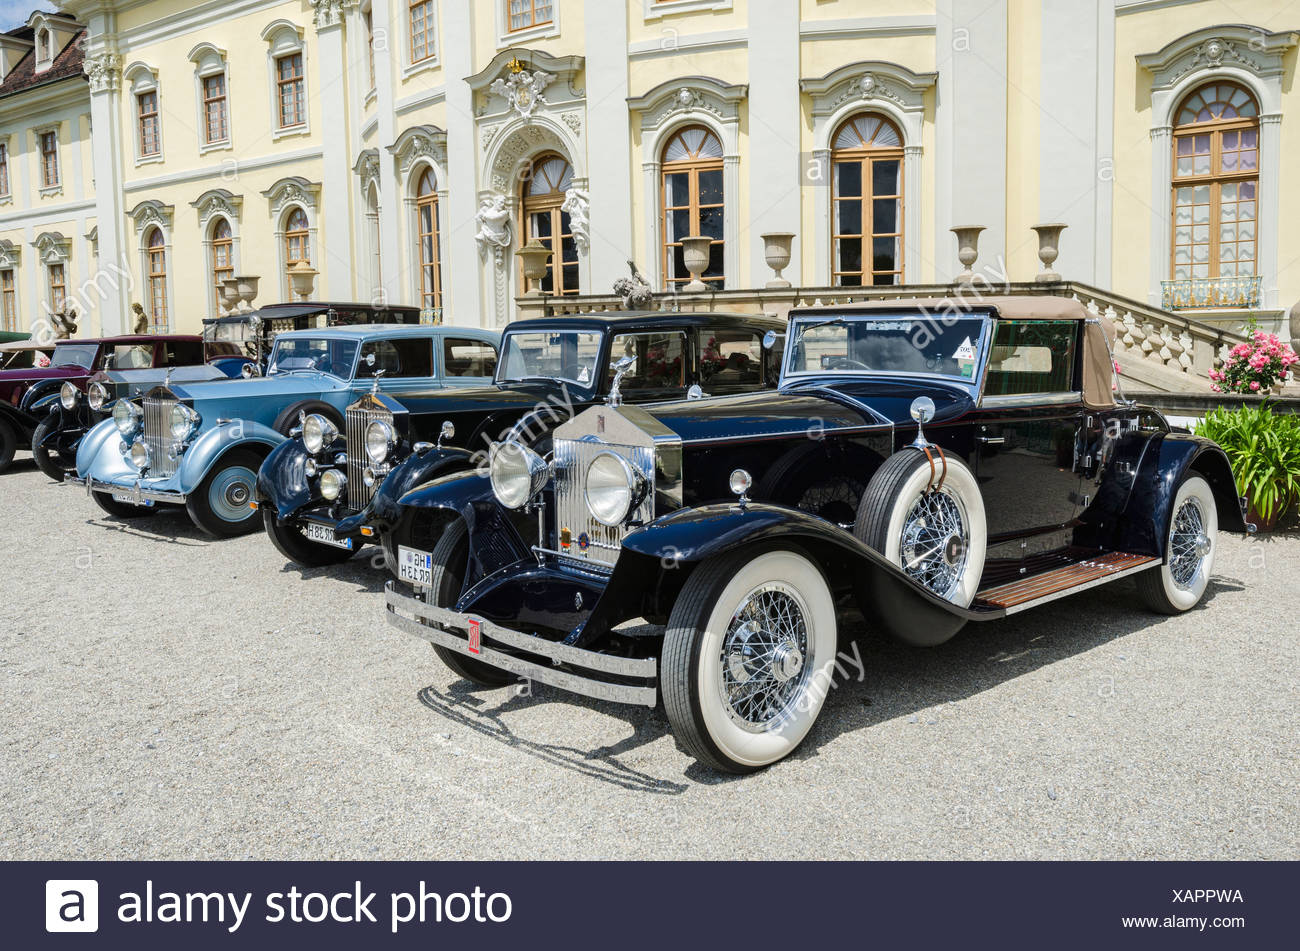 Rolls-Royce classic cars parked in front of Ludwigsburg Palace, Classics meets Barock classic car meeting, Ludwigsburg Palace, - Stock Image